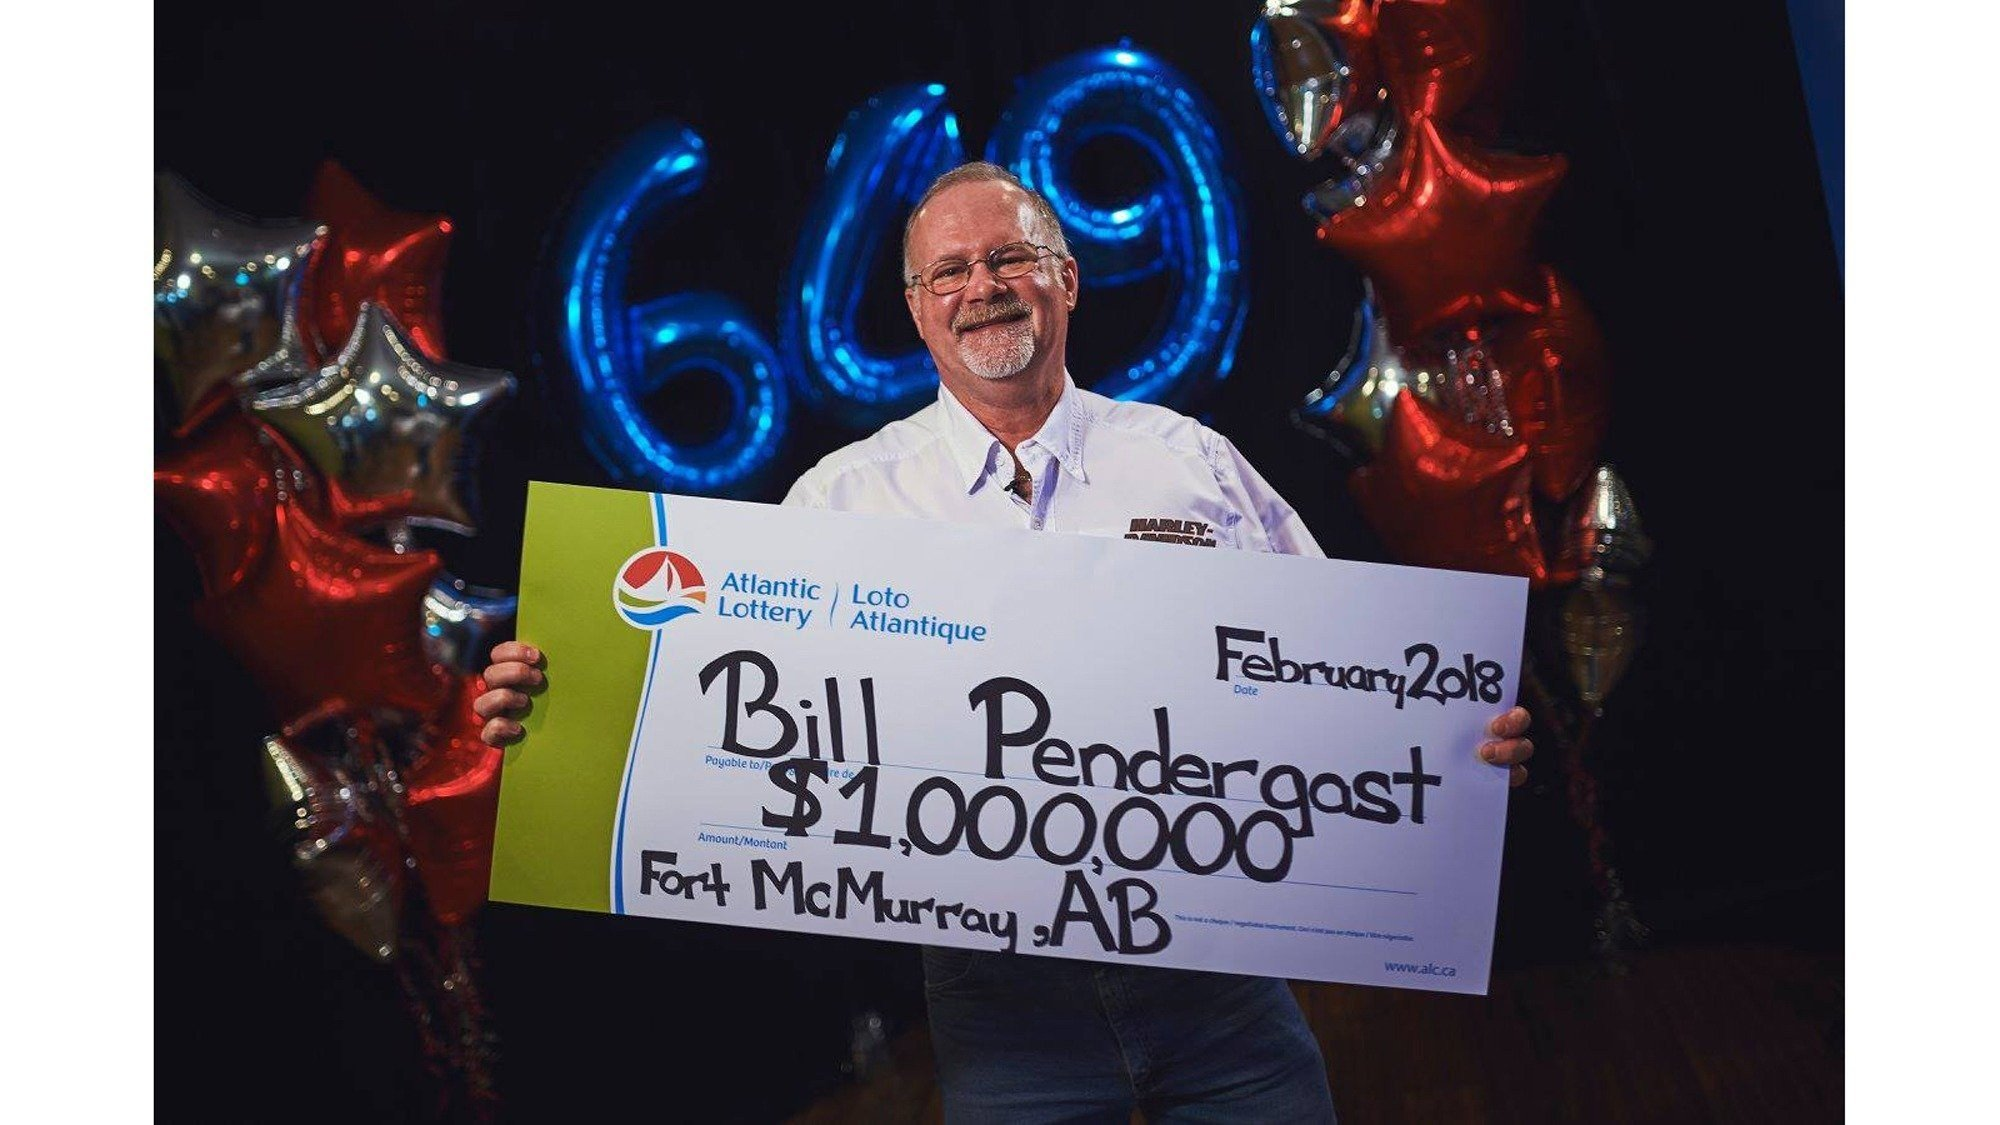 Bill Pendergast has spent the last two years rebuilding his home, which burnt down when a wildfire raged through Fort McMurray, Alberta. (photo credit: Atlantic Lottery)